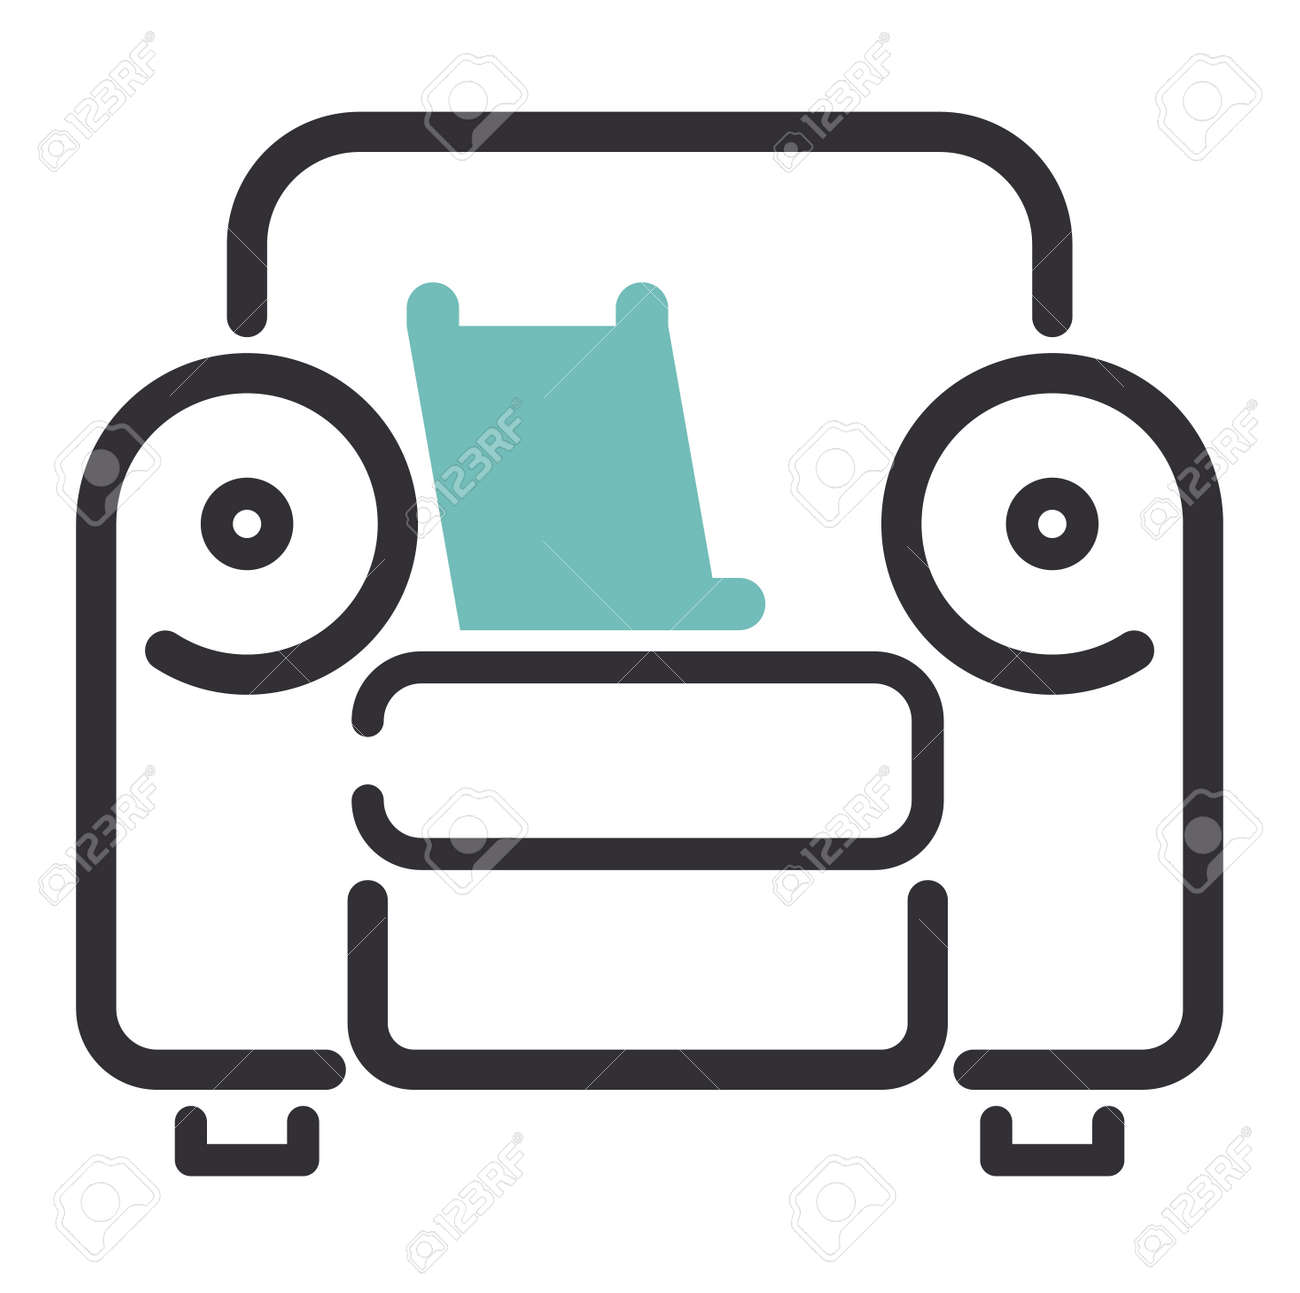 Furniture and home decor icon vector illustration. Indoor cabinet..